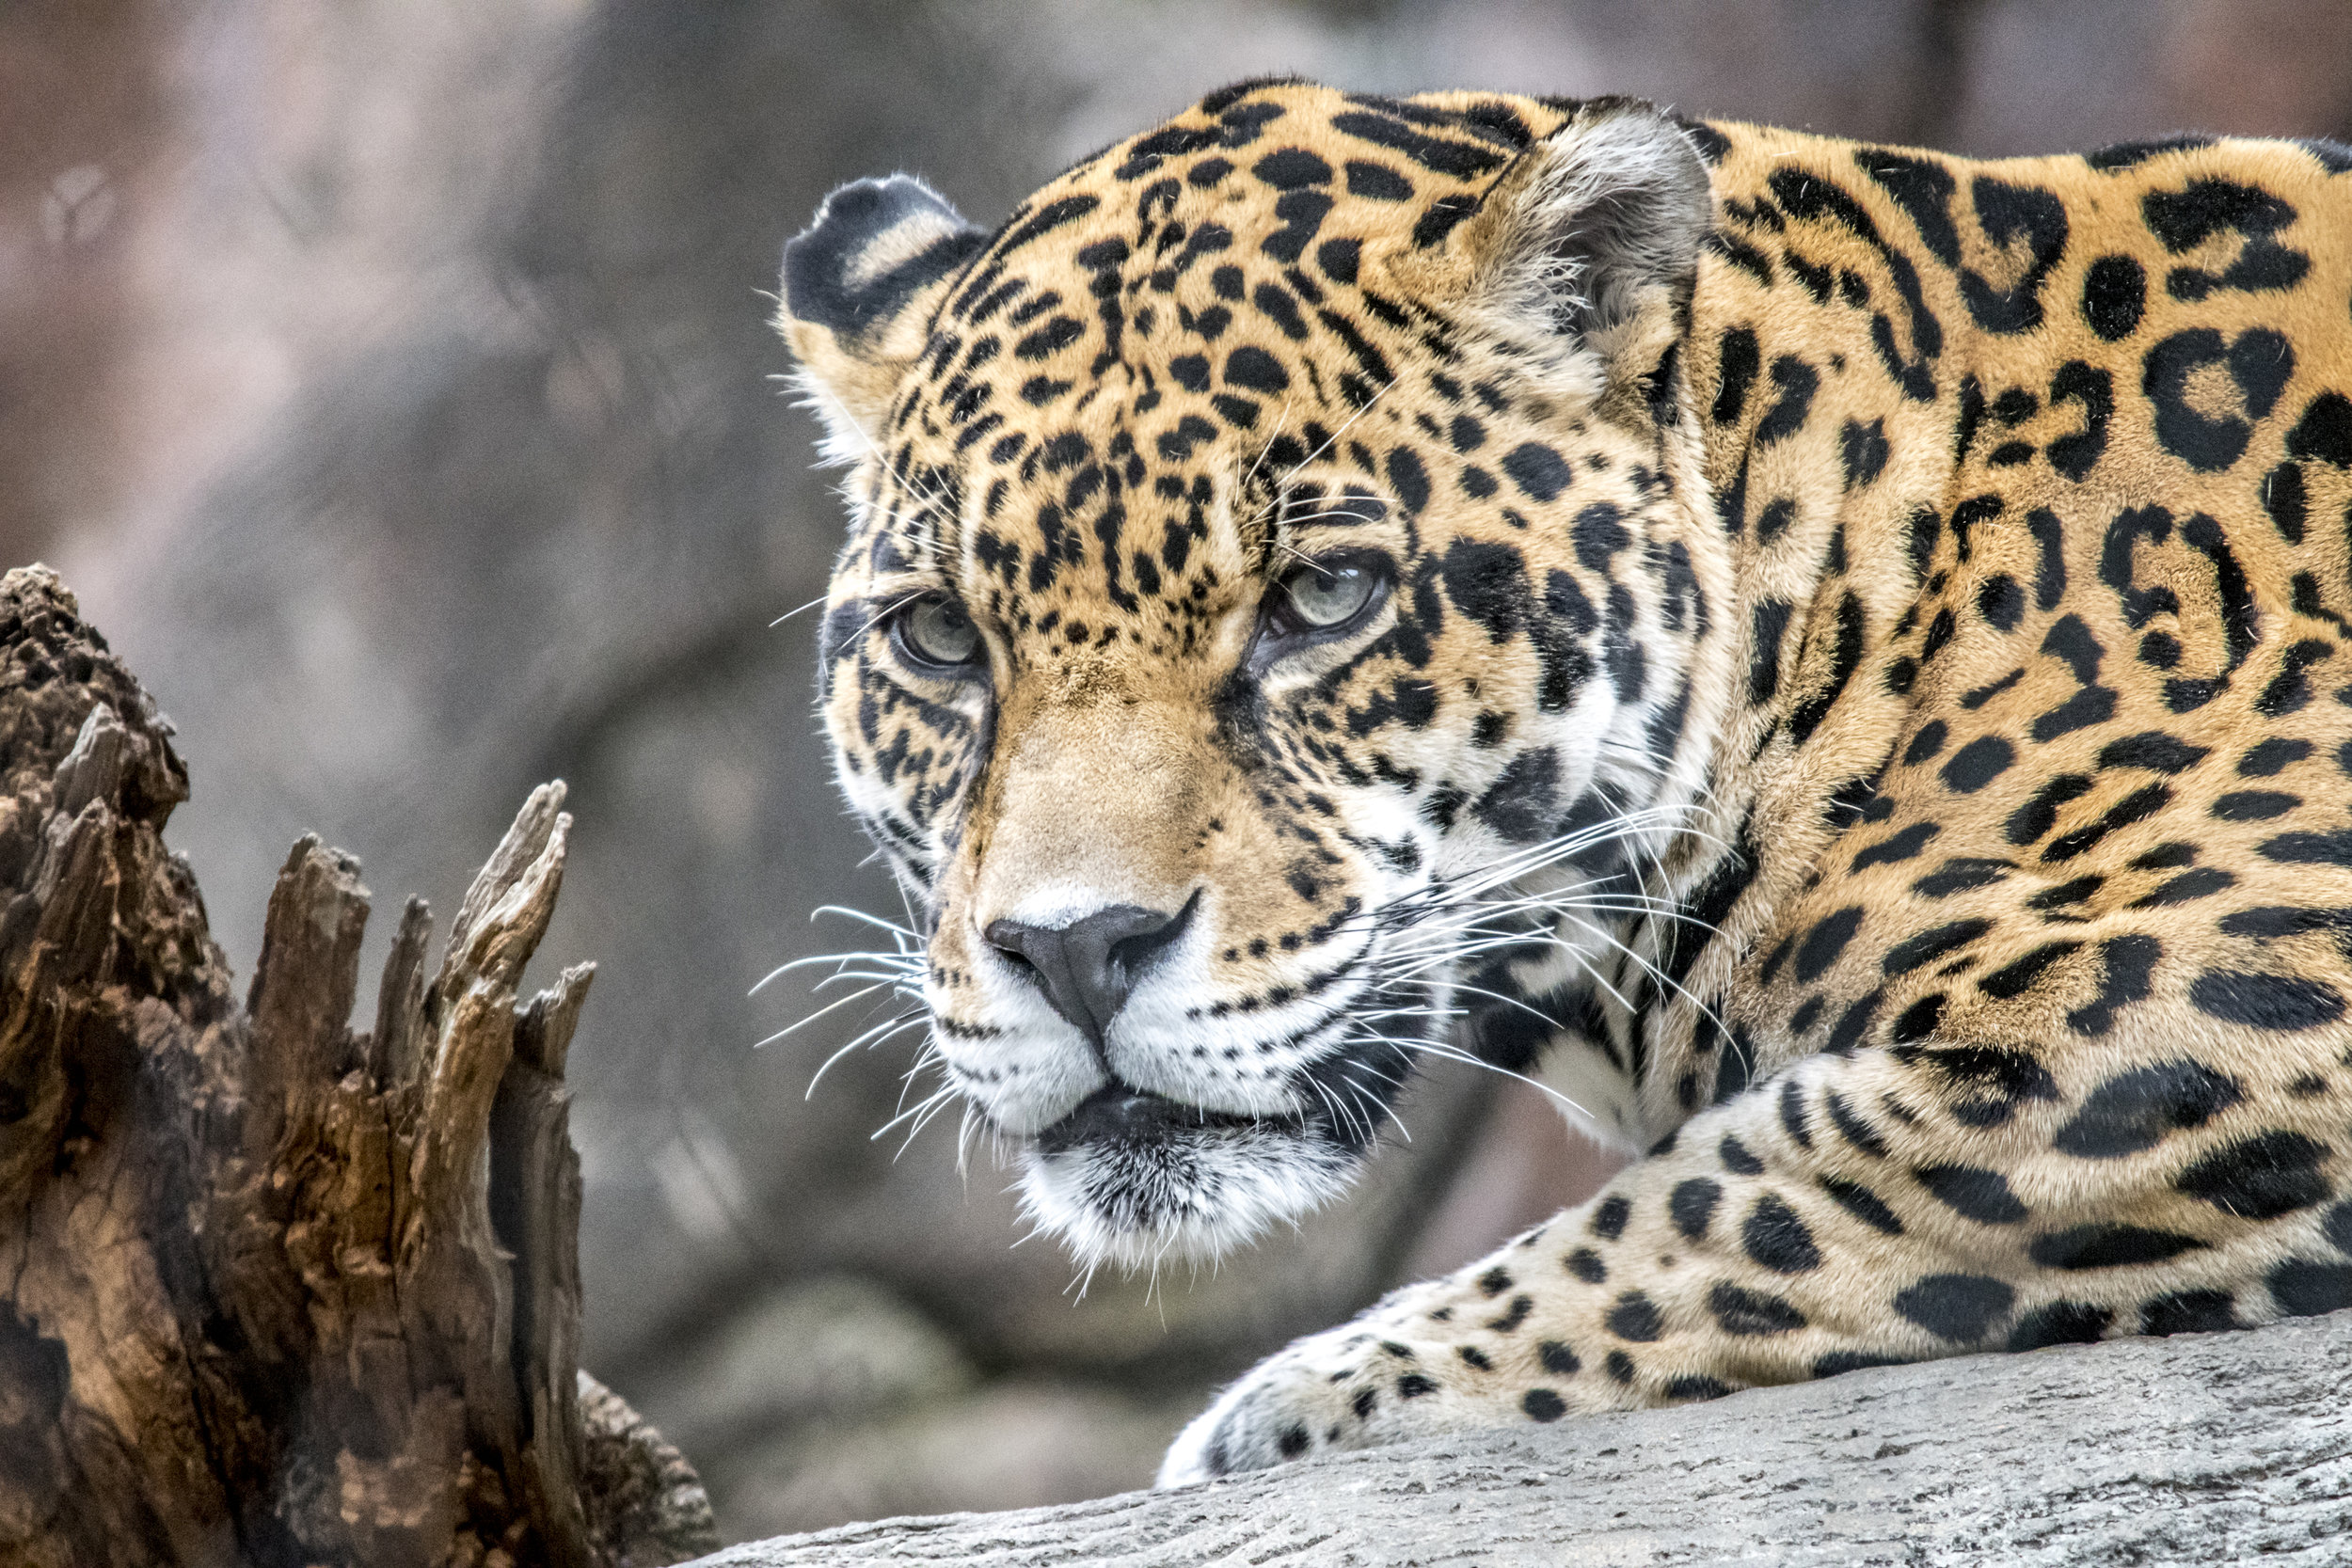 """The Amur Leopard is a critically endangered """"Big Cat"""" that lives in the forests and jungles of far east Asia. There are believed to be around 60 individuals left in the wild!  (Omaha Zoo)"""